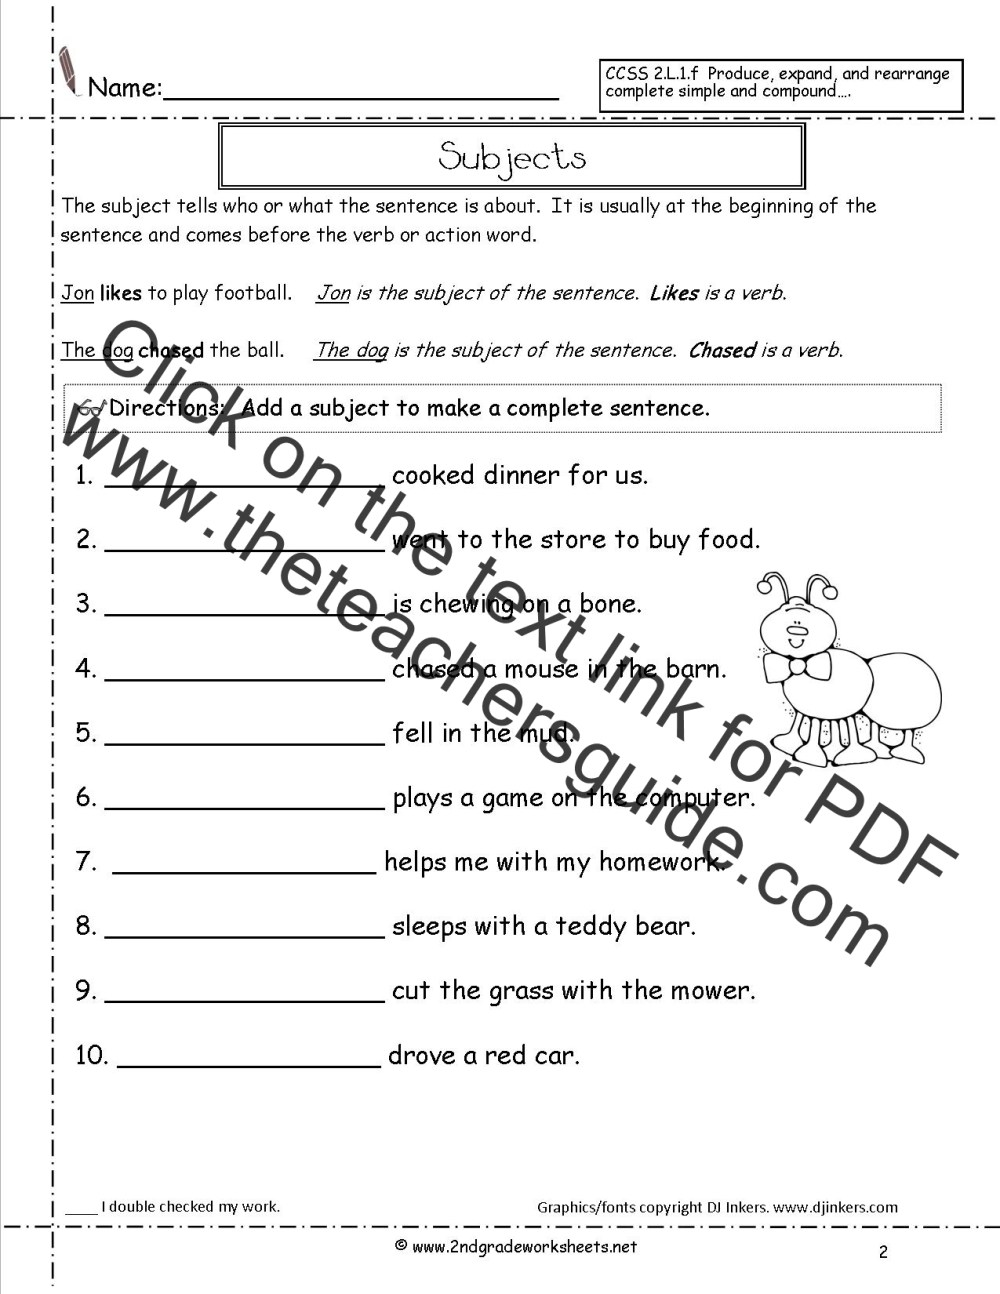 medium resolution of Declarative And Interrogative Sentences Worksheet 2nd Grade - Nidecmege